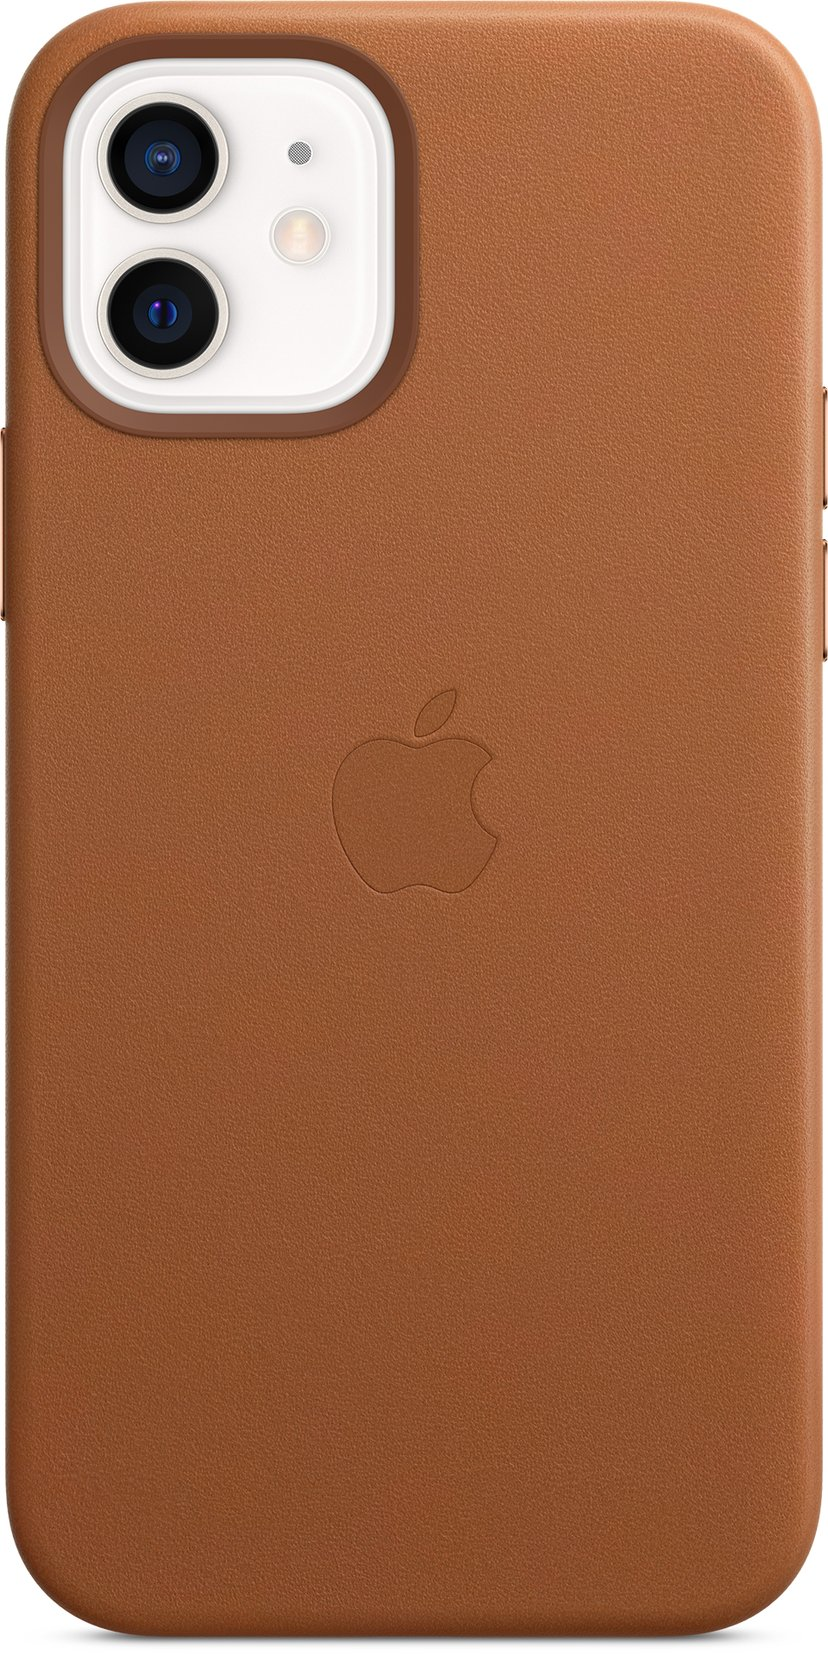 Apple Leather Case with MagSafe iPhone 12, iPhone 12 Pro Salbrun